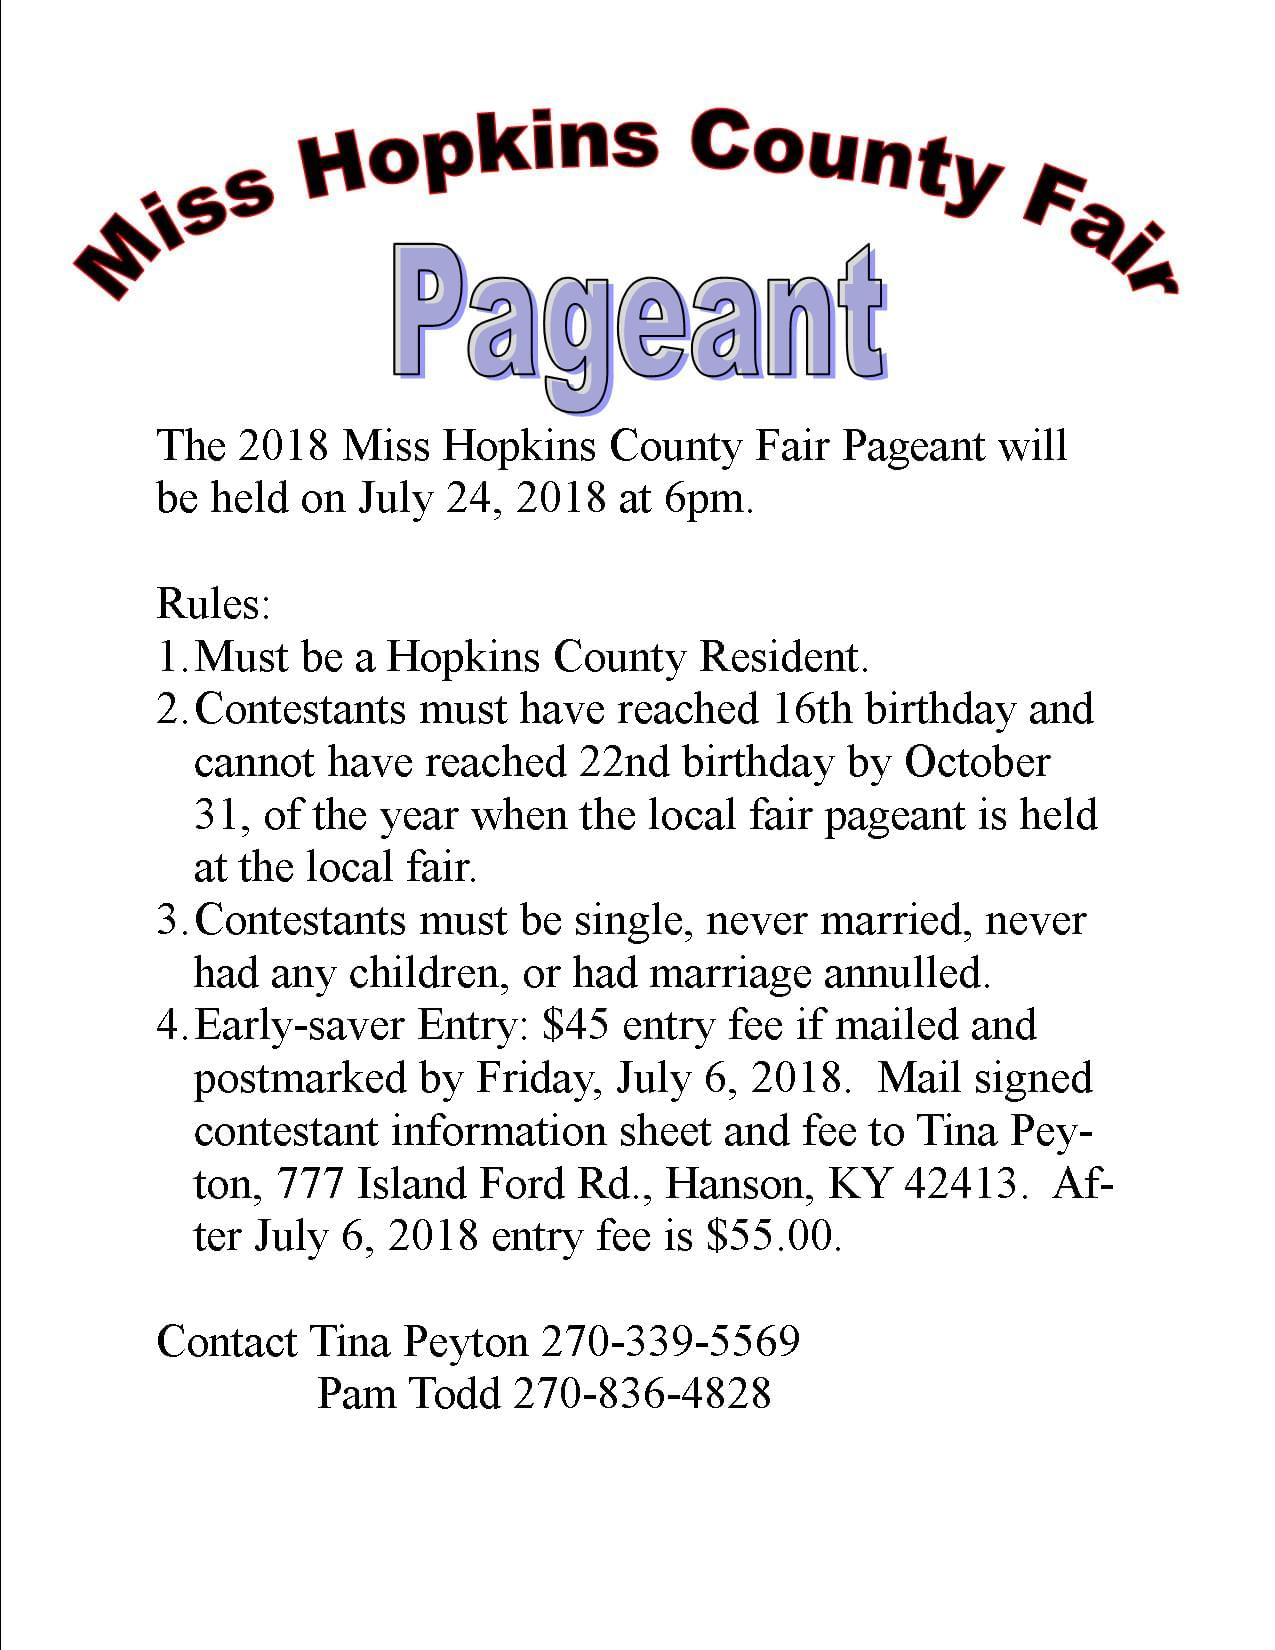 Miss Hopkins County Fair Pageant